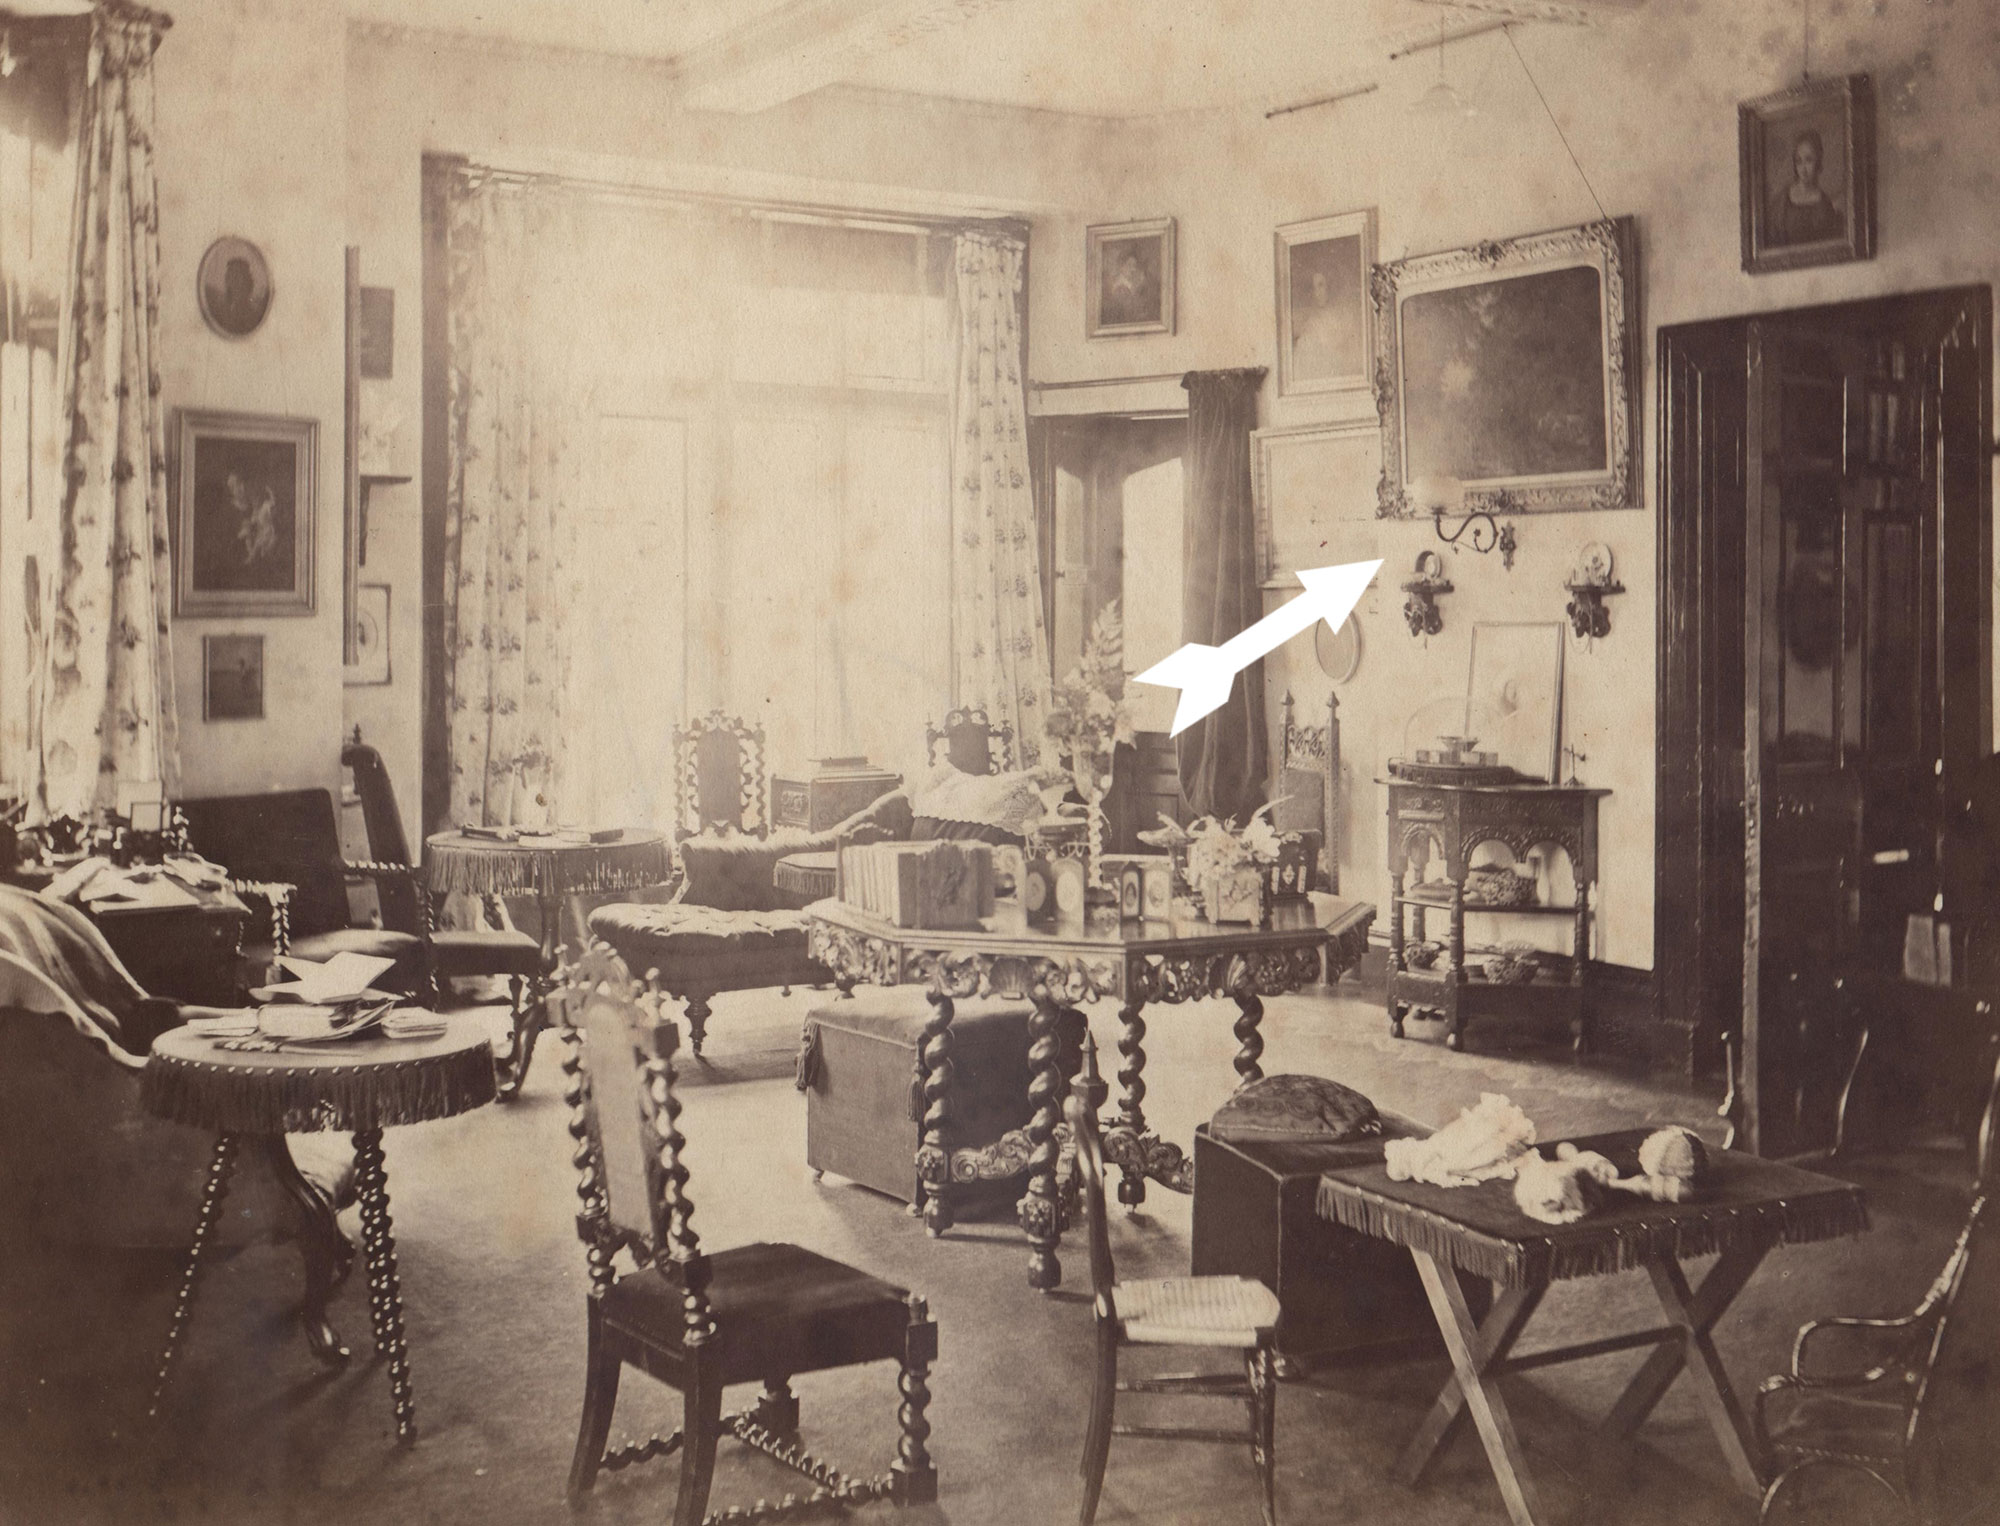 The old Drawing Room at Clevedon Court showing the Hardman gas lamp in its original position